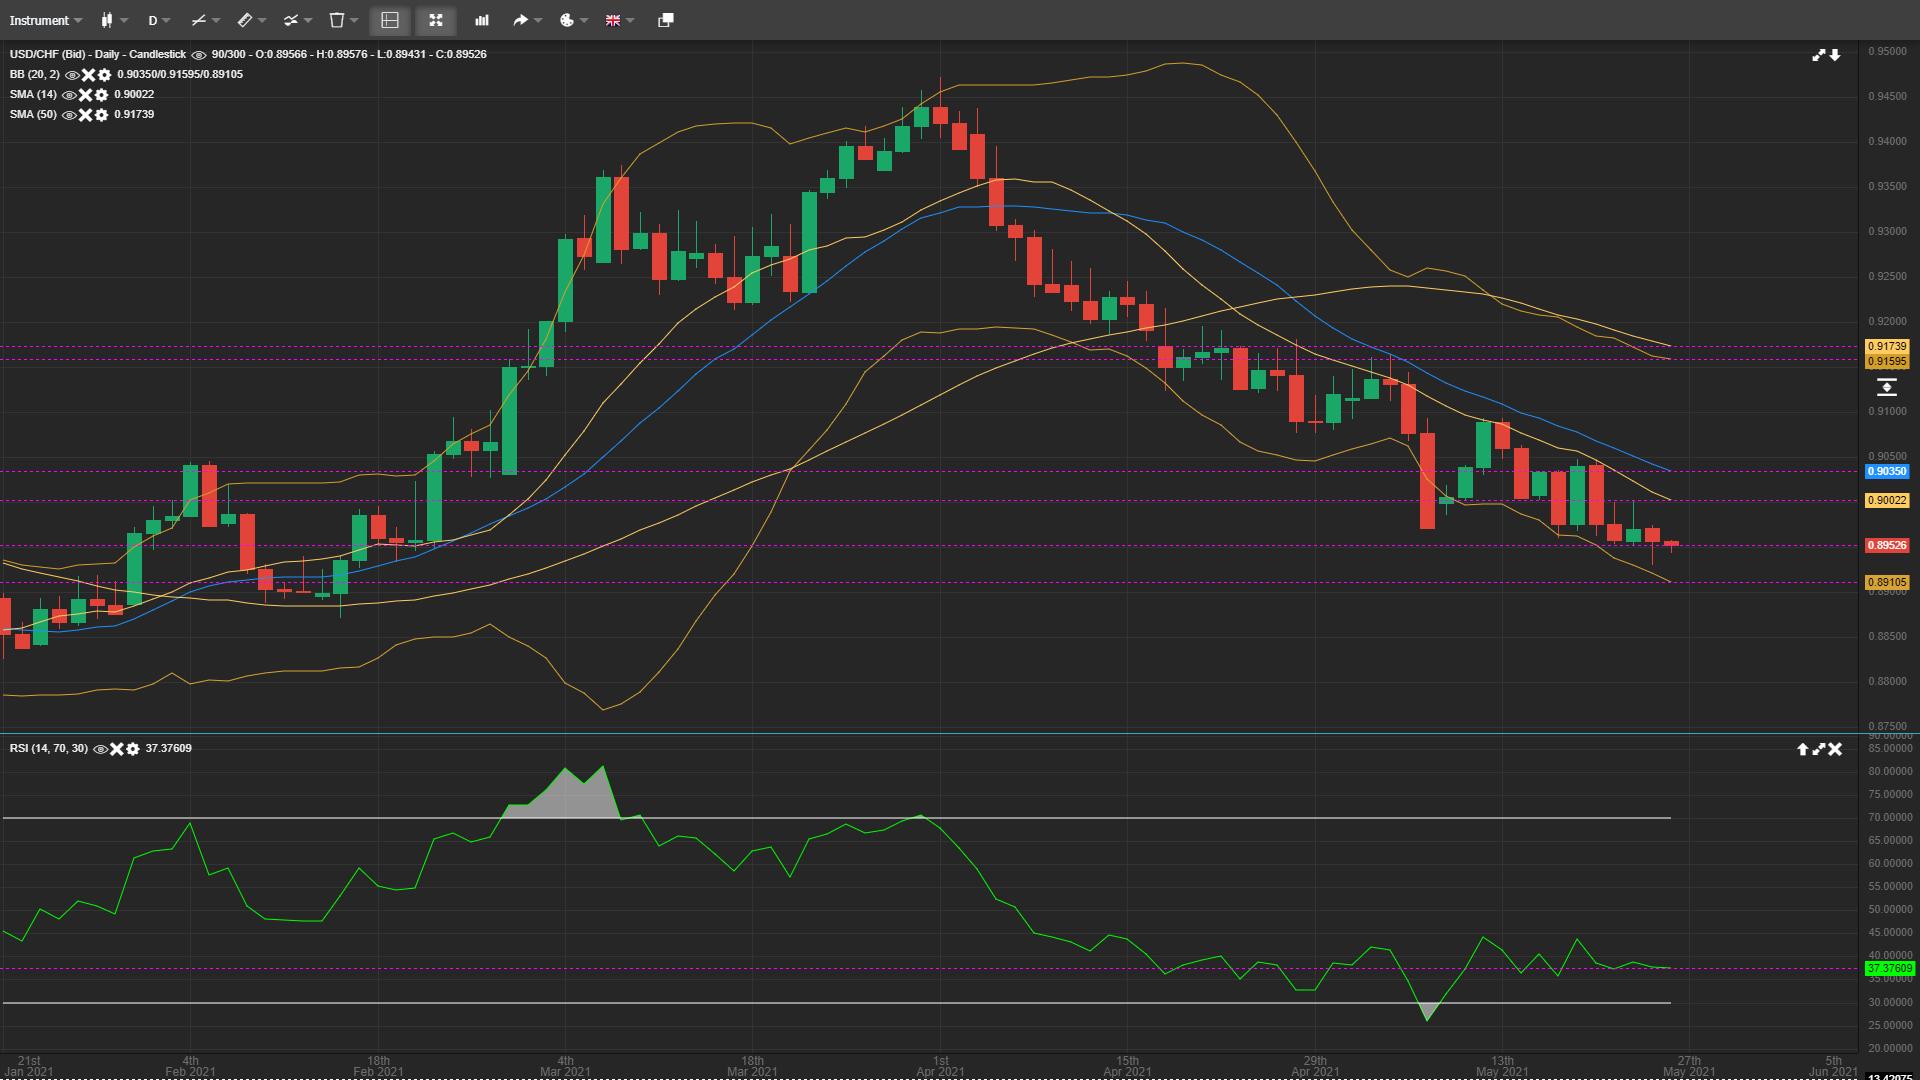 USD/CHF Continues Pointing Downwards